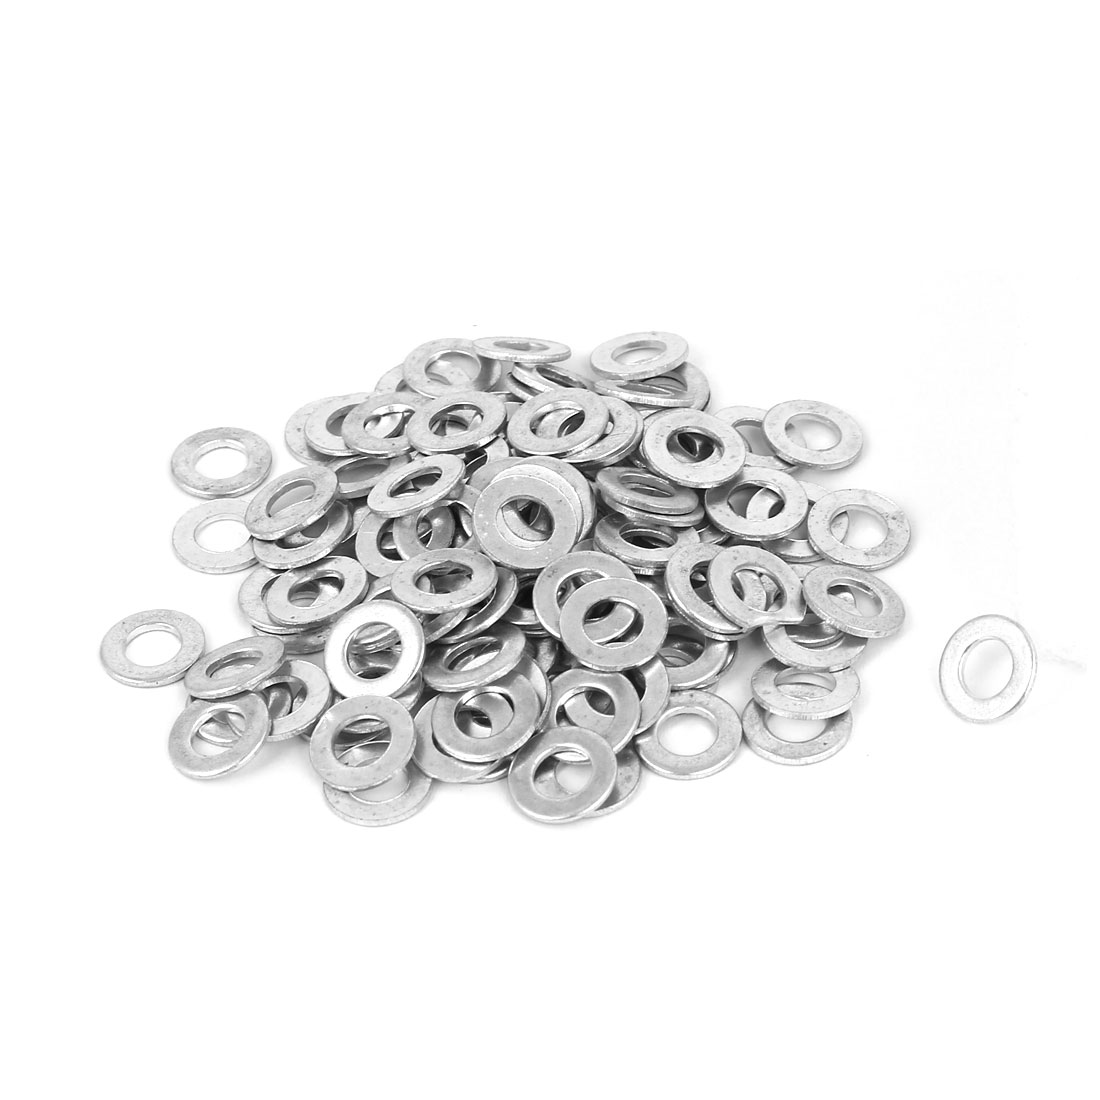 5mm x 10mm Zinc Plated Flat Spacers Washers Gaskets Fasteners GB97 100PCS